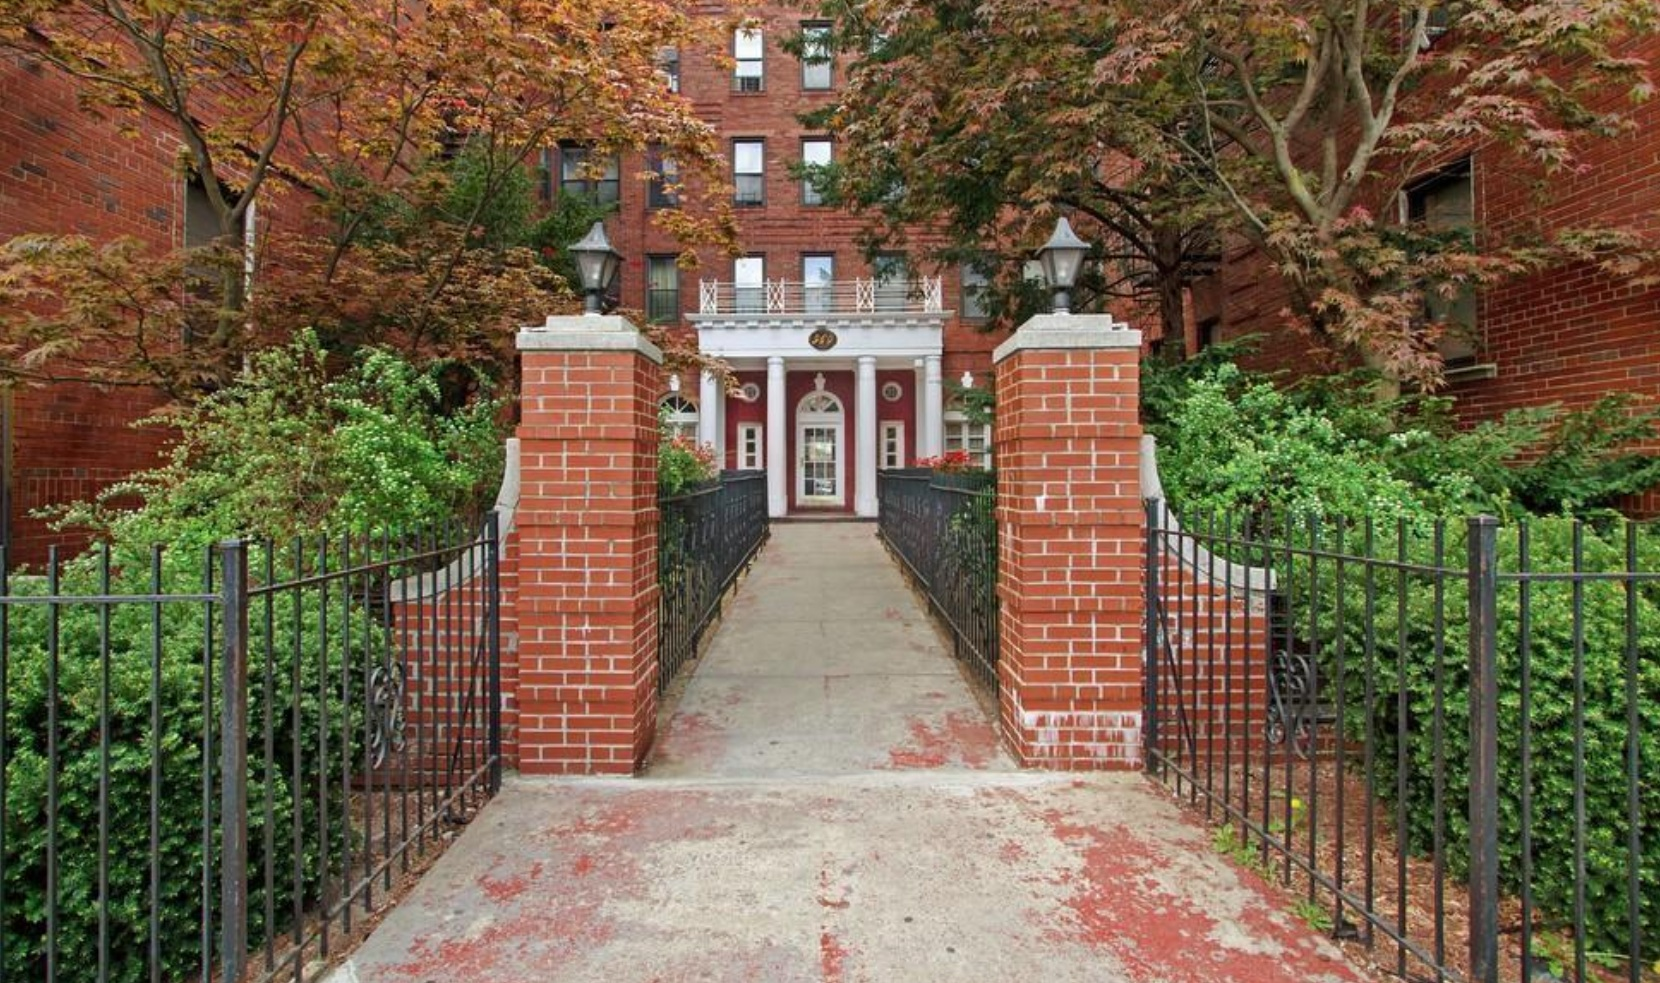 $485,000 1.0 BD | 1.0 BA | 700 SF  Crown Heights  960 Sterling Place  Sold